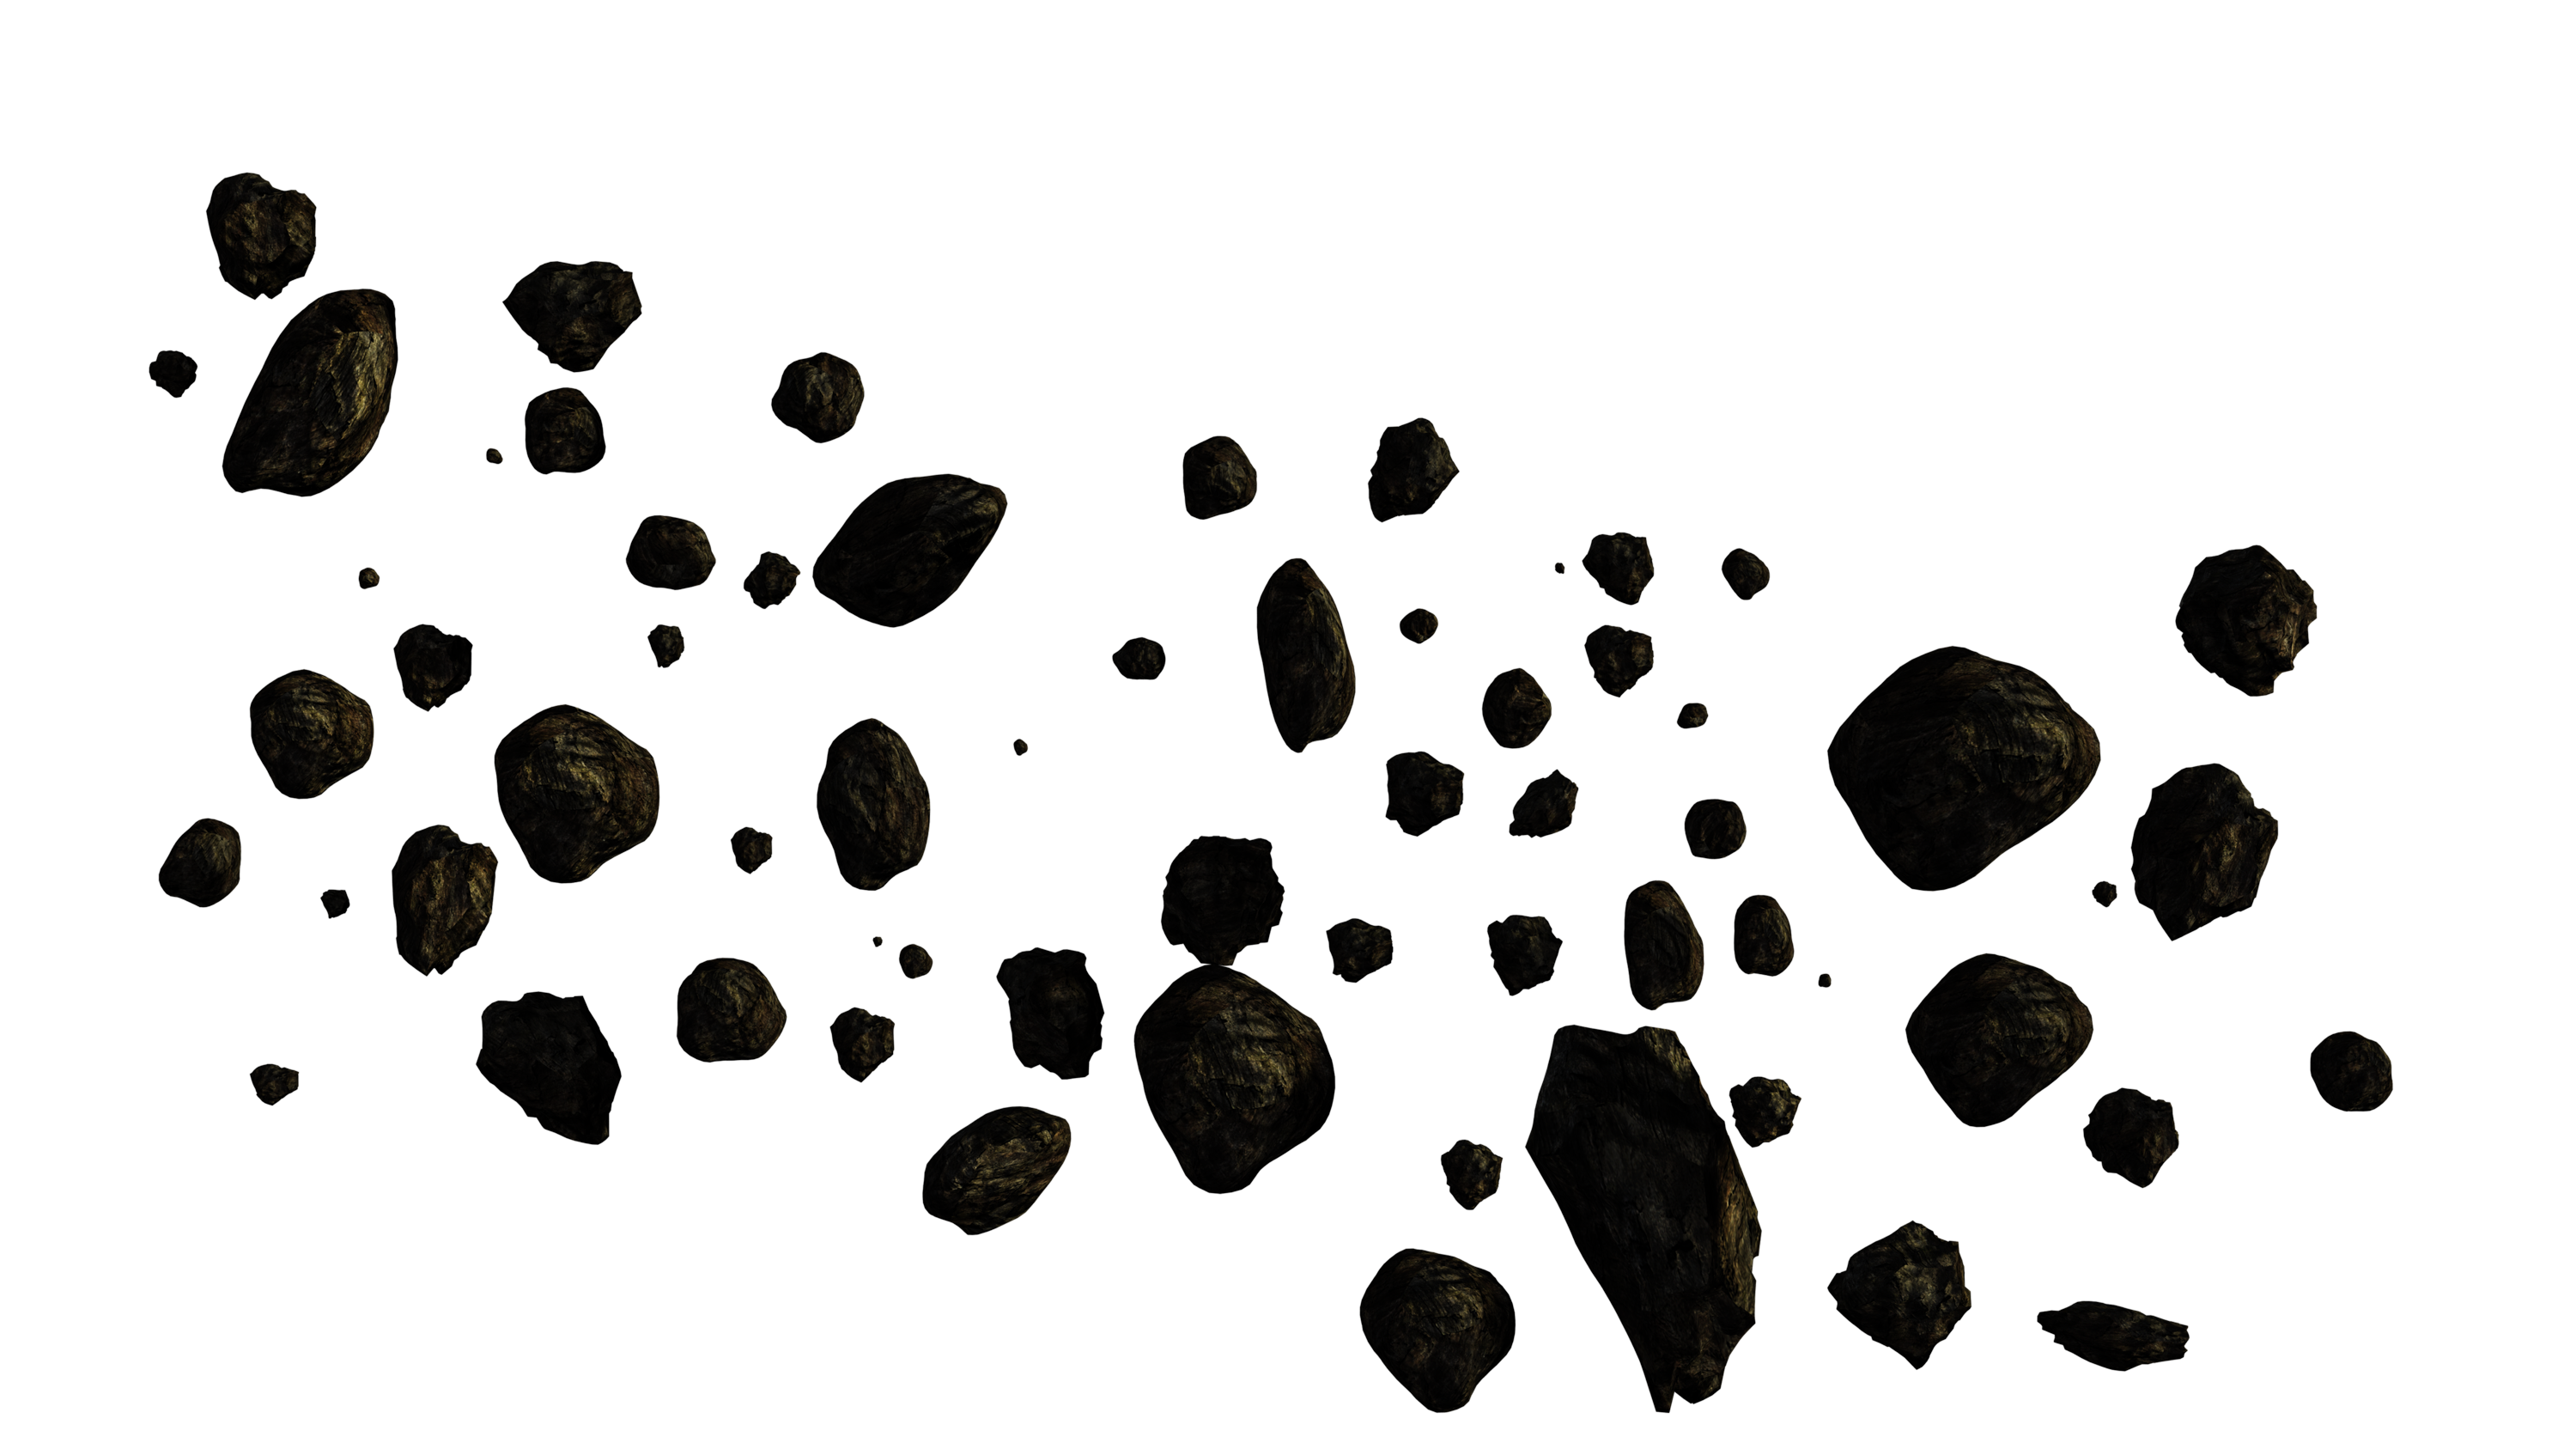 freeuse Images of transparent background. Asteroid clipart scratch.